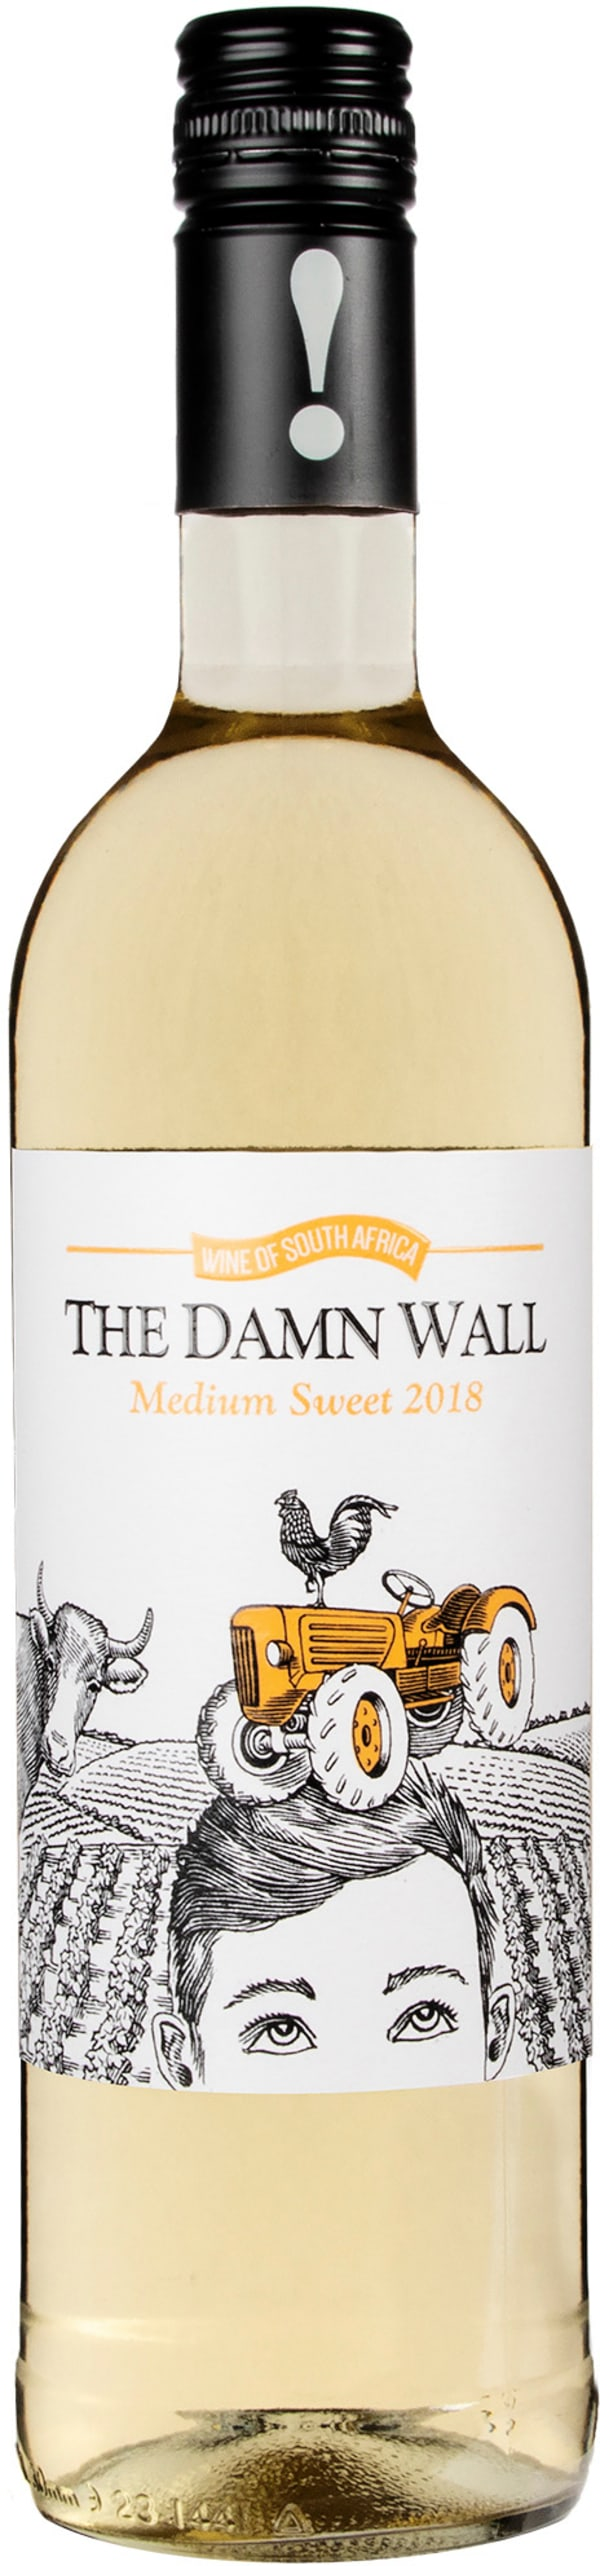 The Damn Wall Medium Sweet 2018